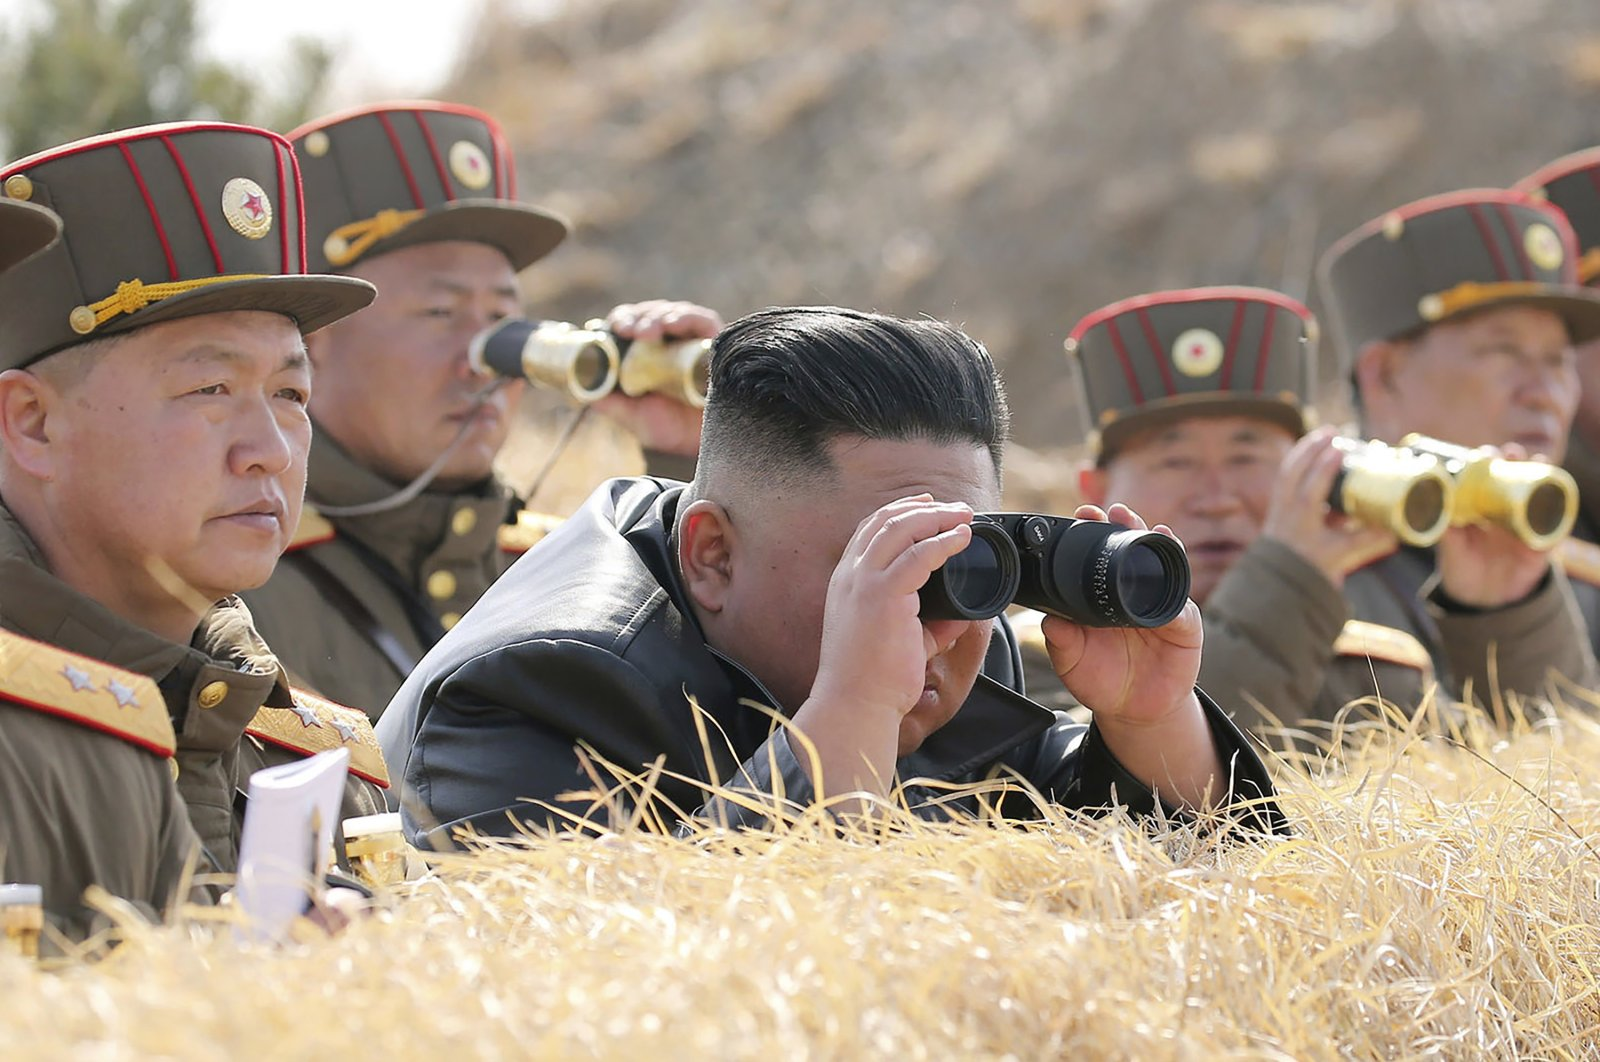 In this Friday, March 20, 2020, photo provided by the North Korean government, North Korean leader Kim Jong Un supervises an artillery firing competition between army units in the country's west in North Korea. (Korean Central News Agency via AP)